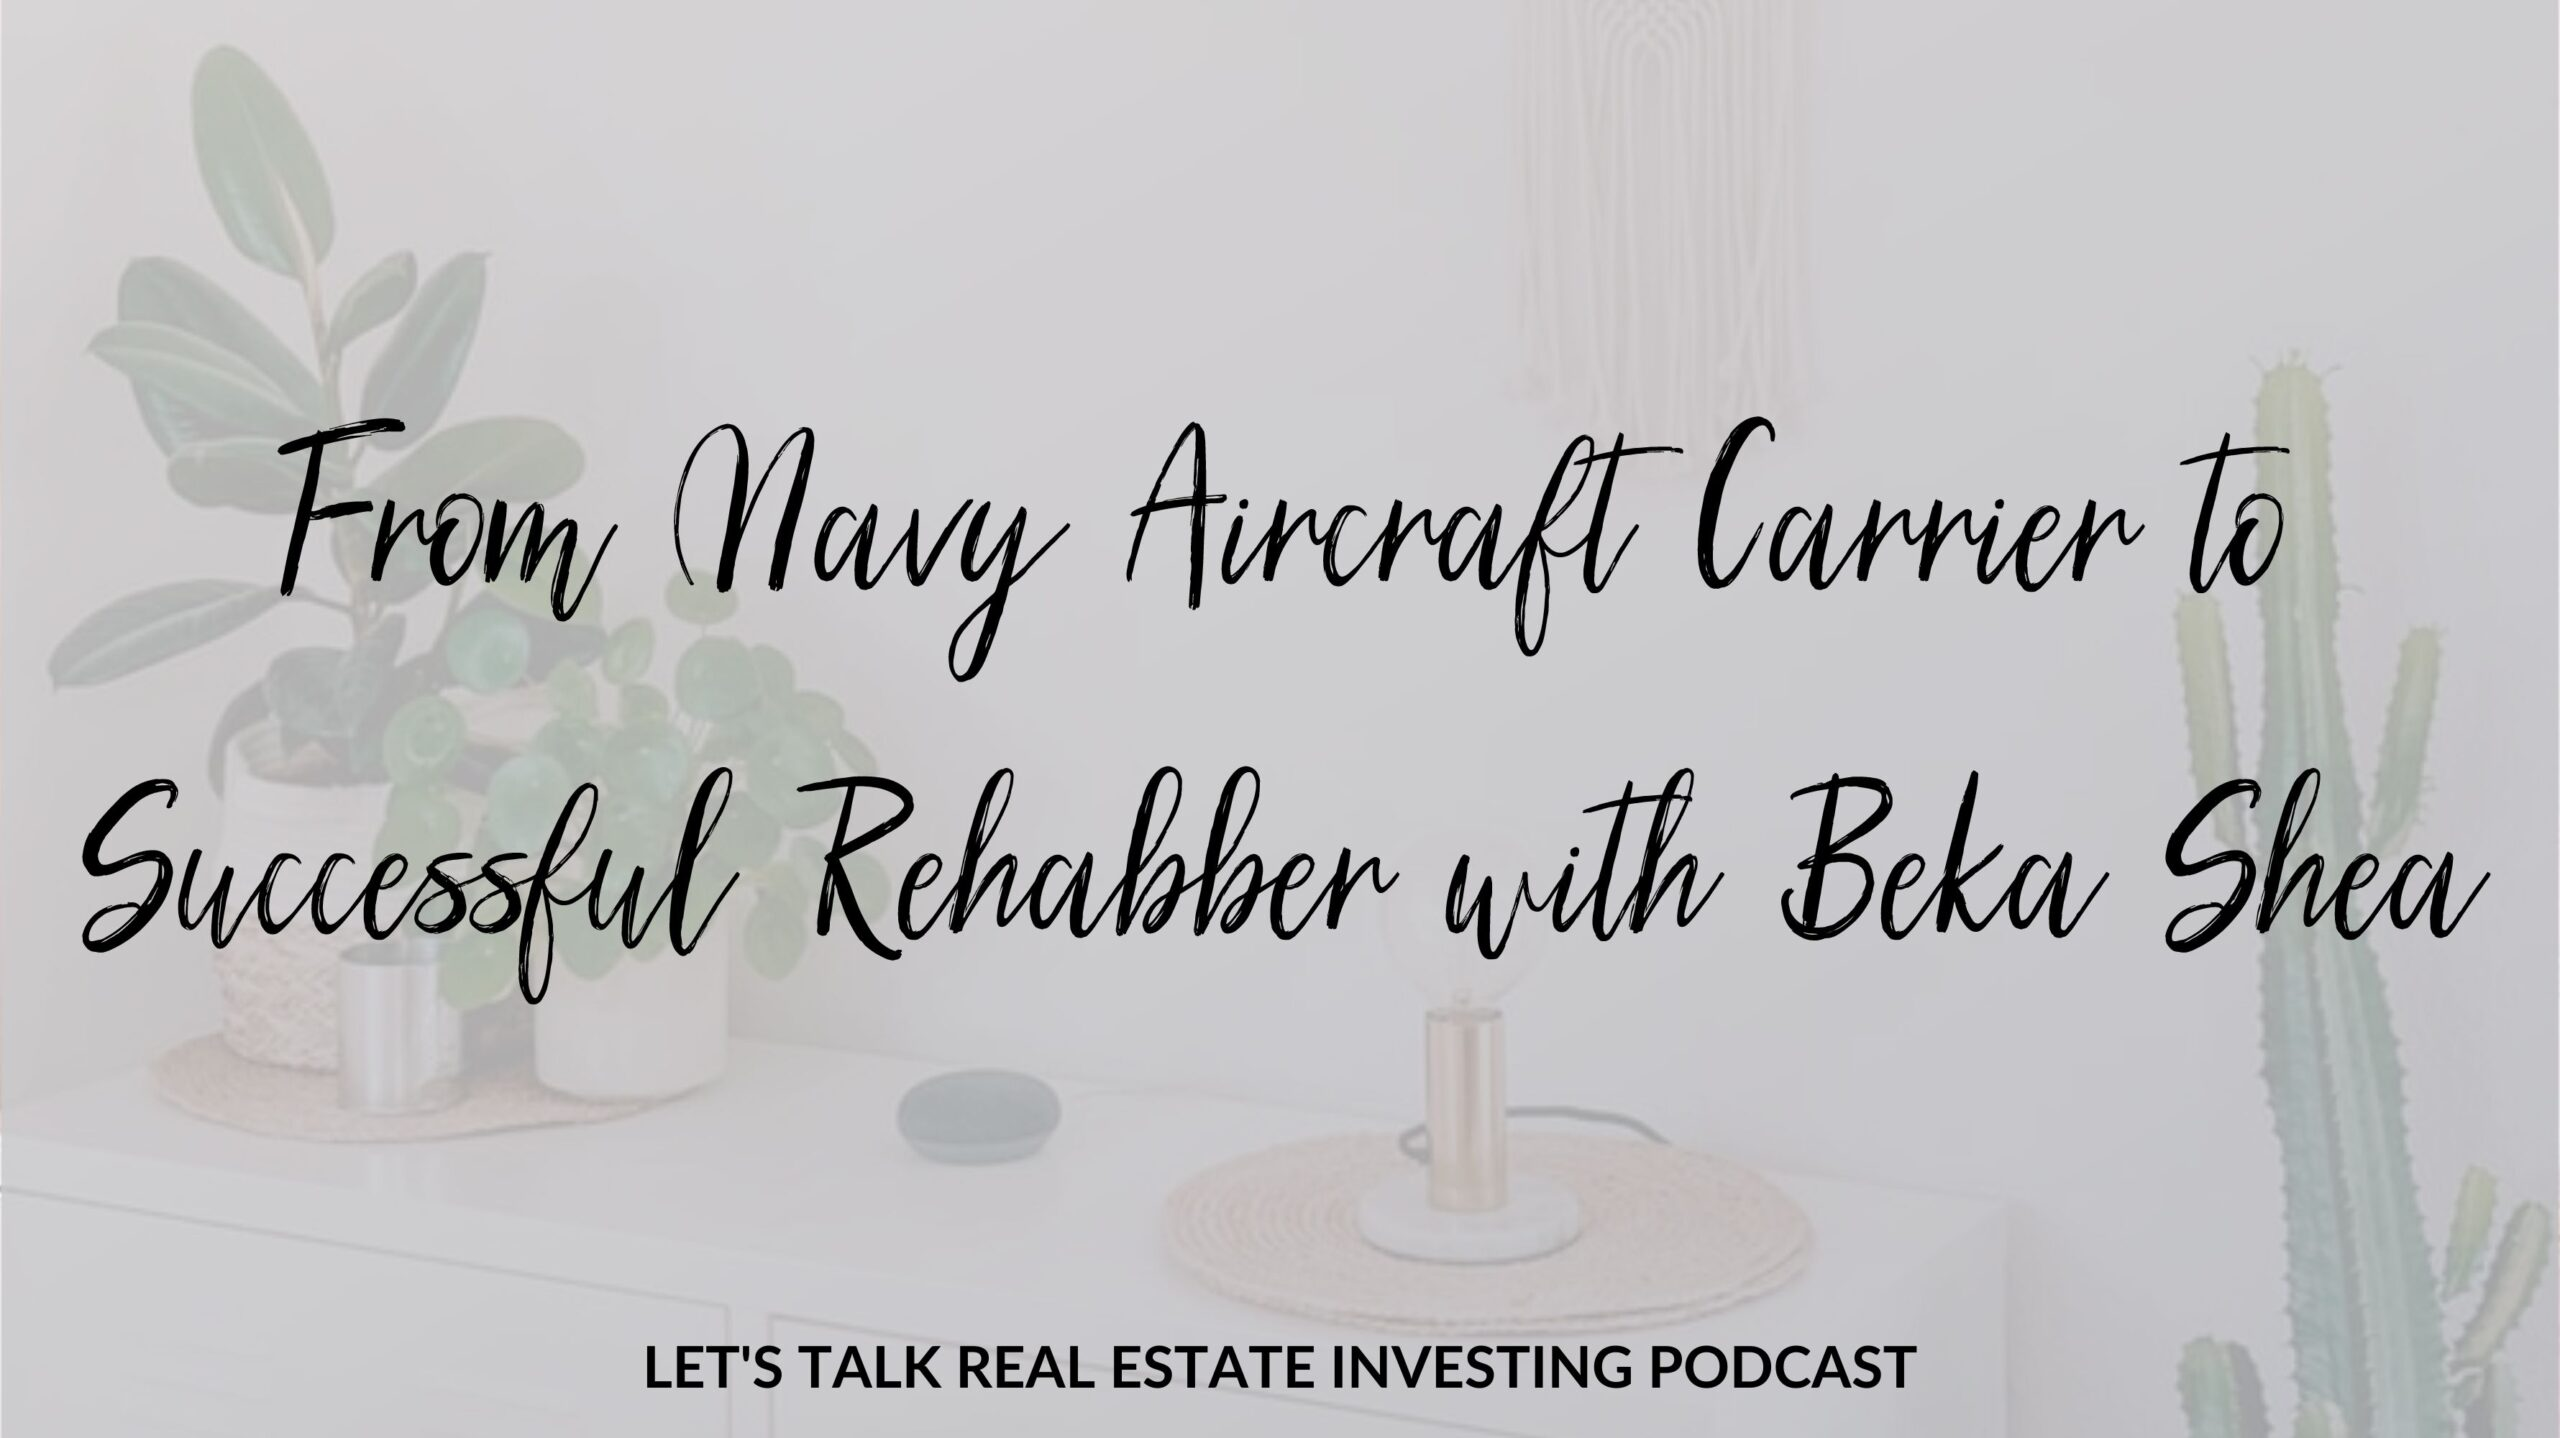 From Navy Aircraft Carrier to Successful Rehabber with Beka Shea